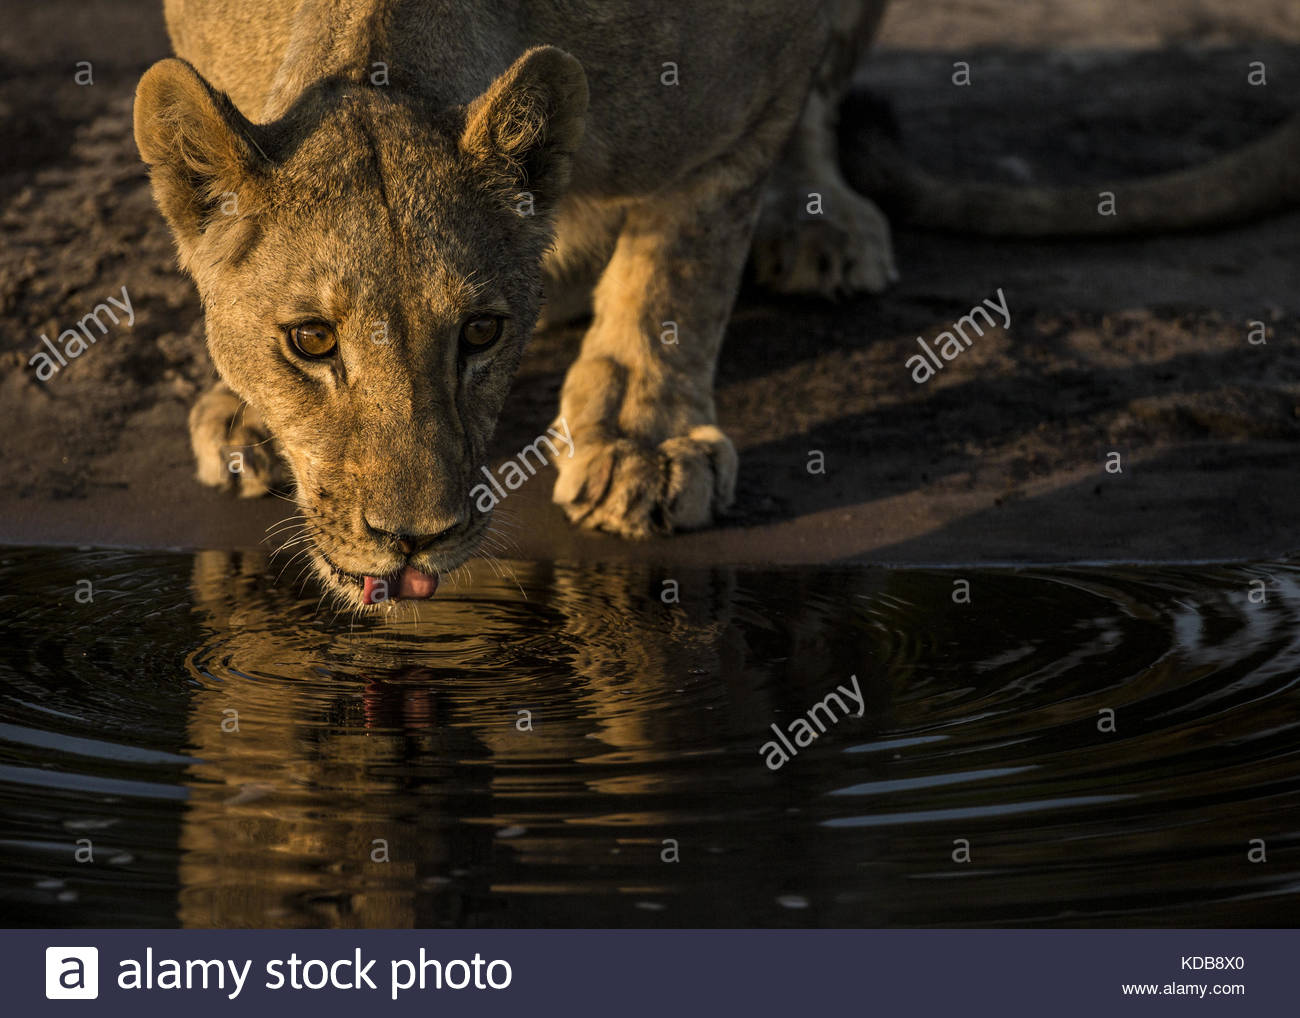 Young male lion, Panthera leo, drinking from a spillway. - Stock Image